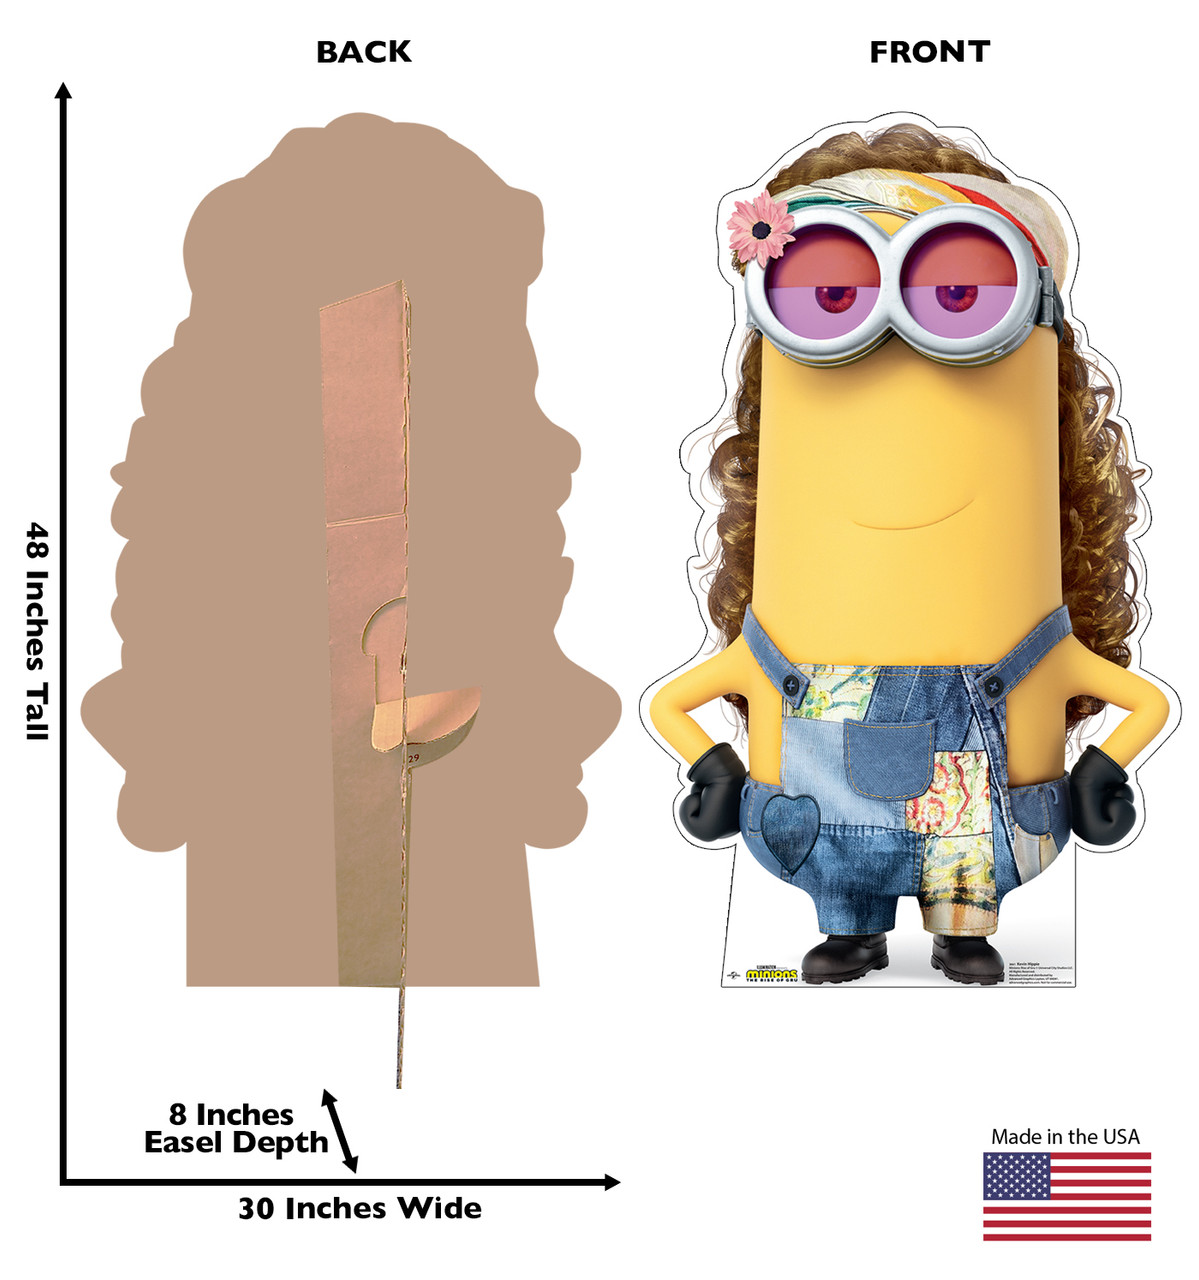 Life-size cardboard standee of Kevin Hippie from the new movie Minions Rise of Gru with back and front dimensions.